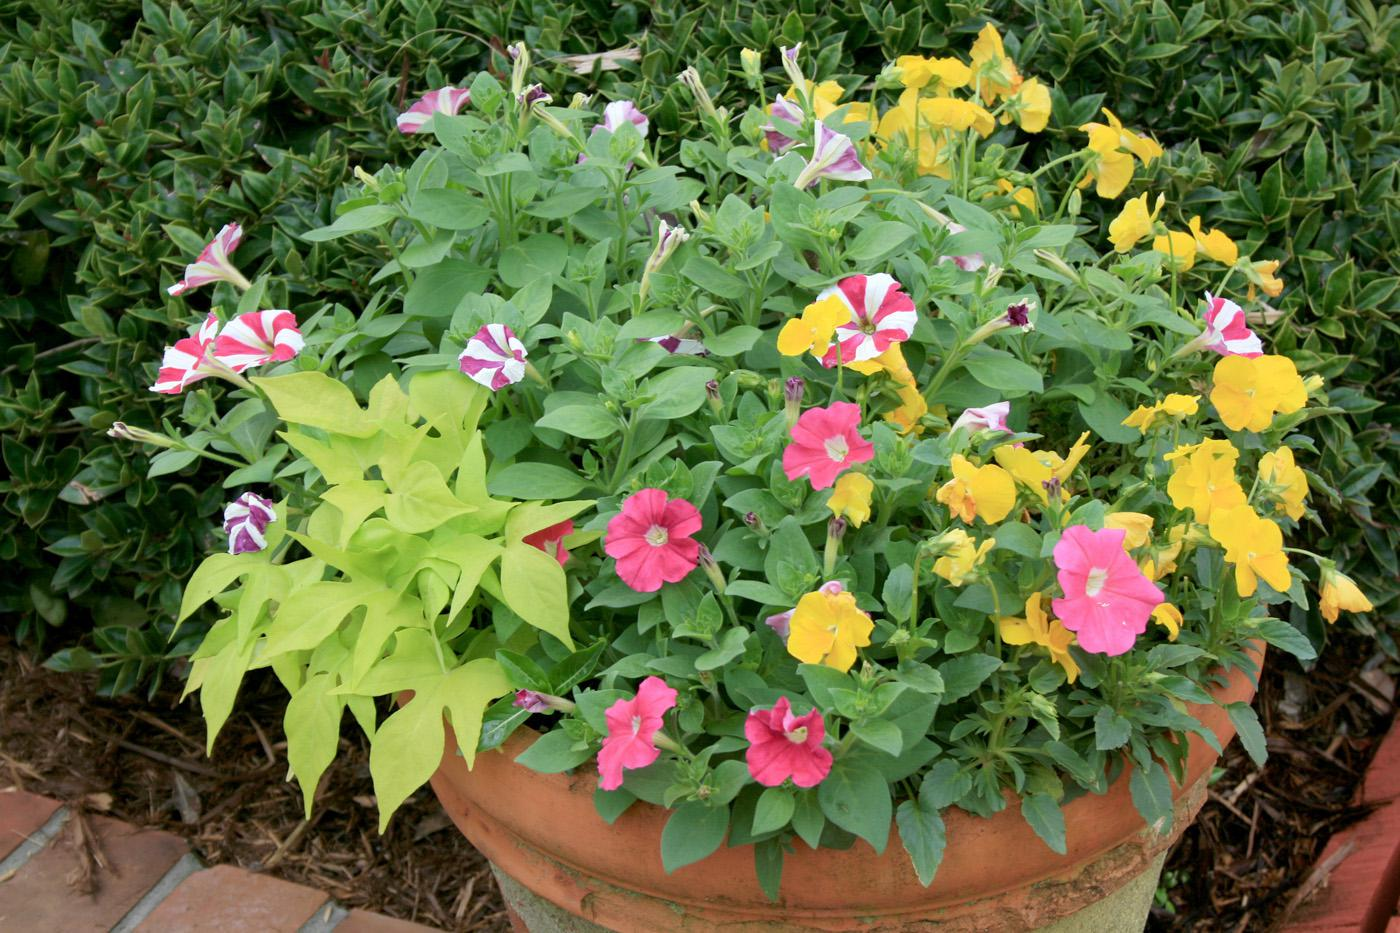 Nearly any plant can be included in a container planting, such as this colorful combination of petunia, pansy and sweet potato vine.